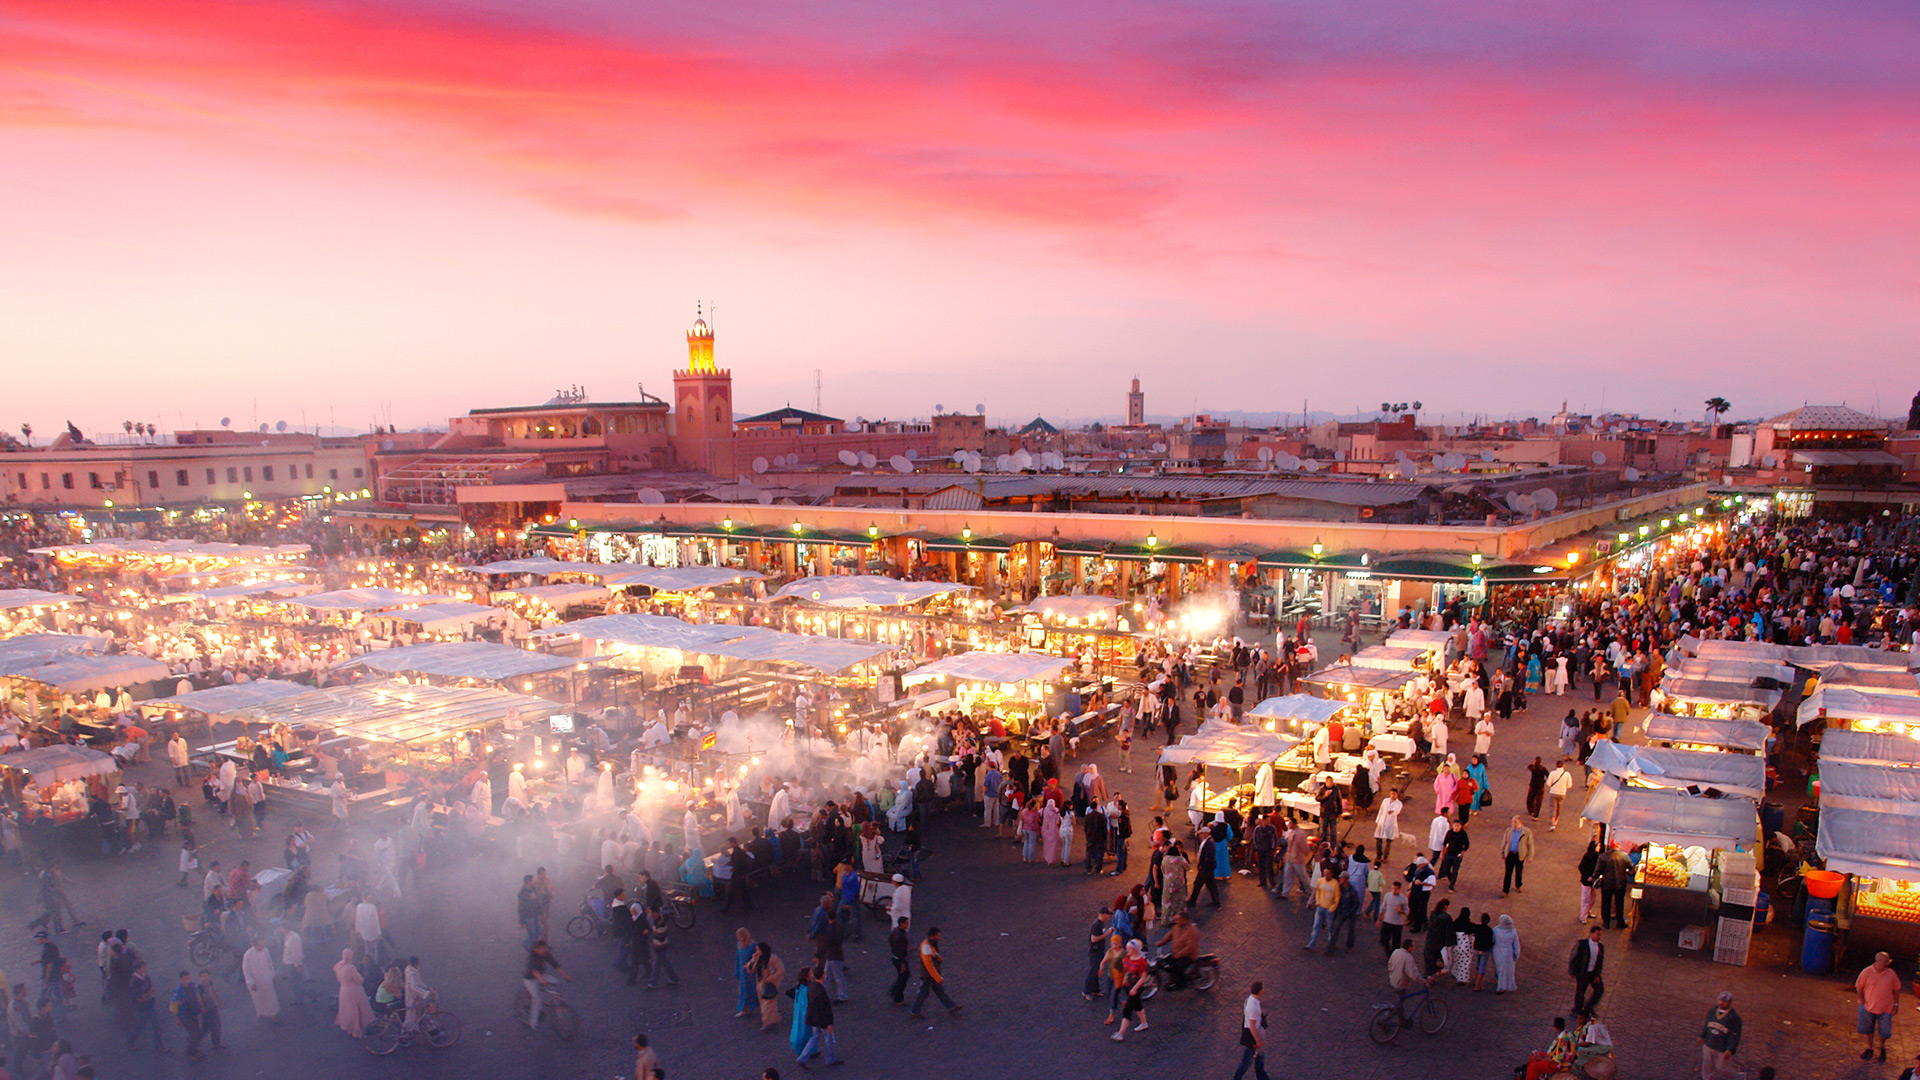 Djemaa el-Fna Square in Marrakesh